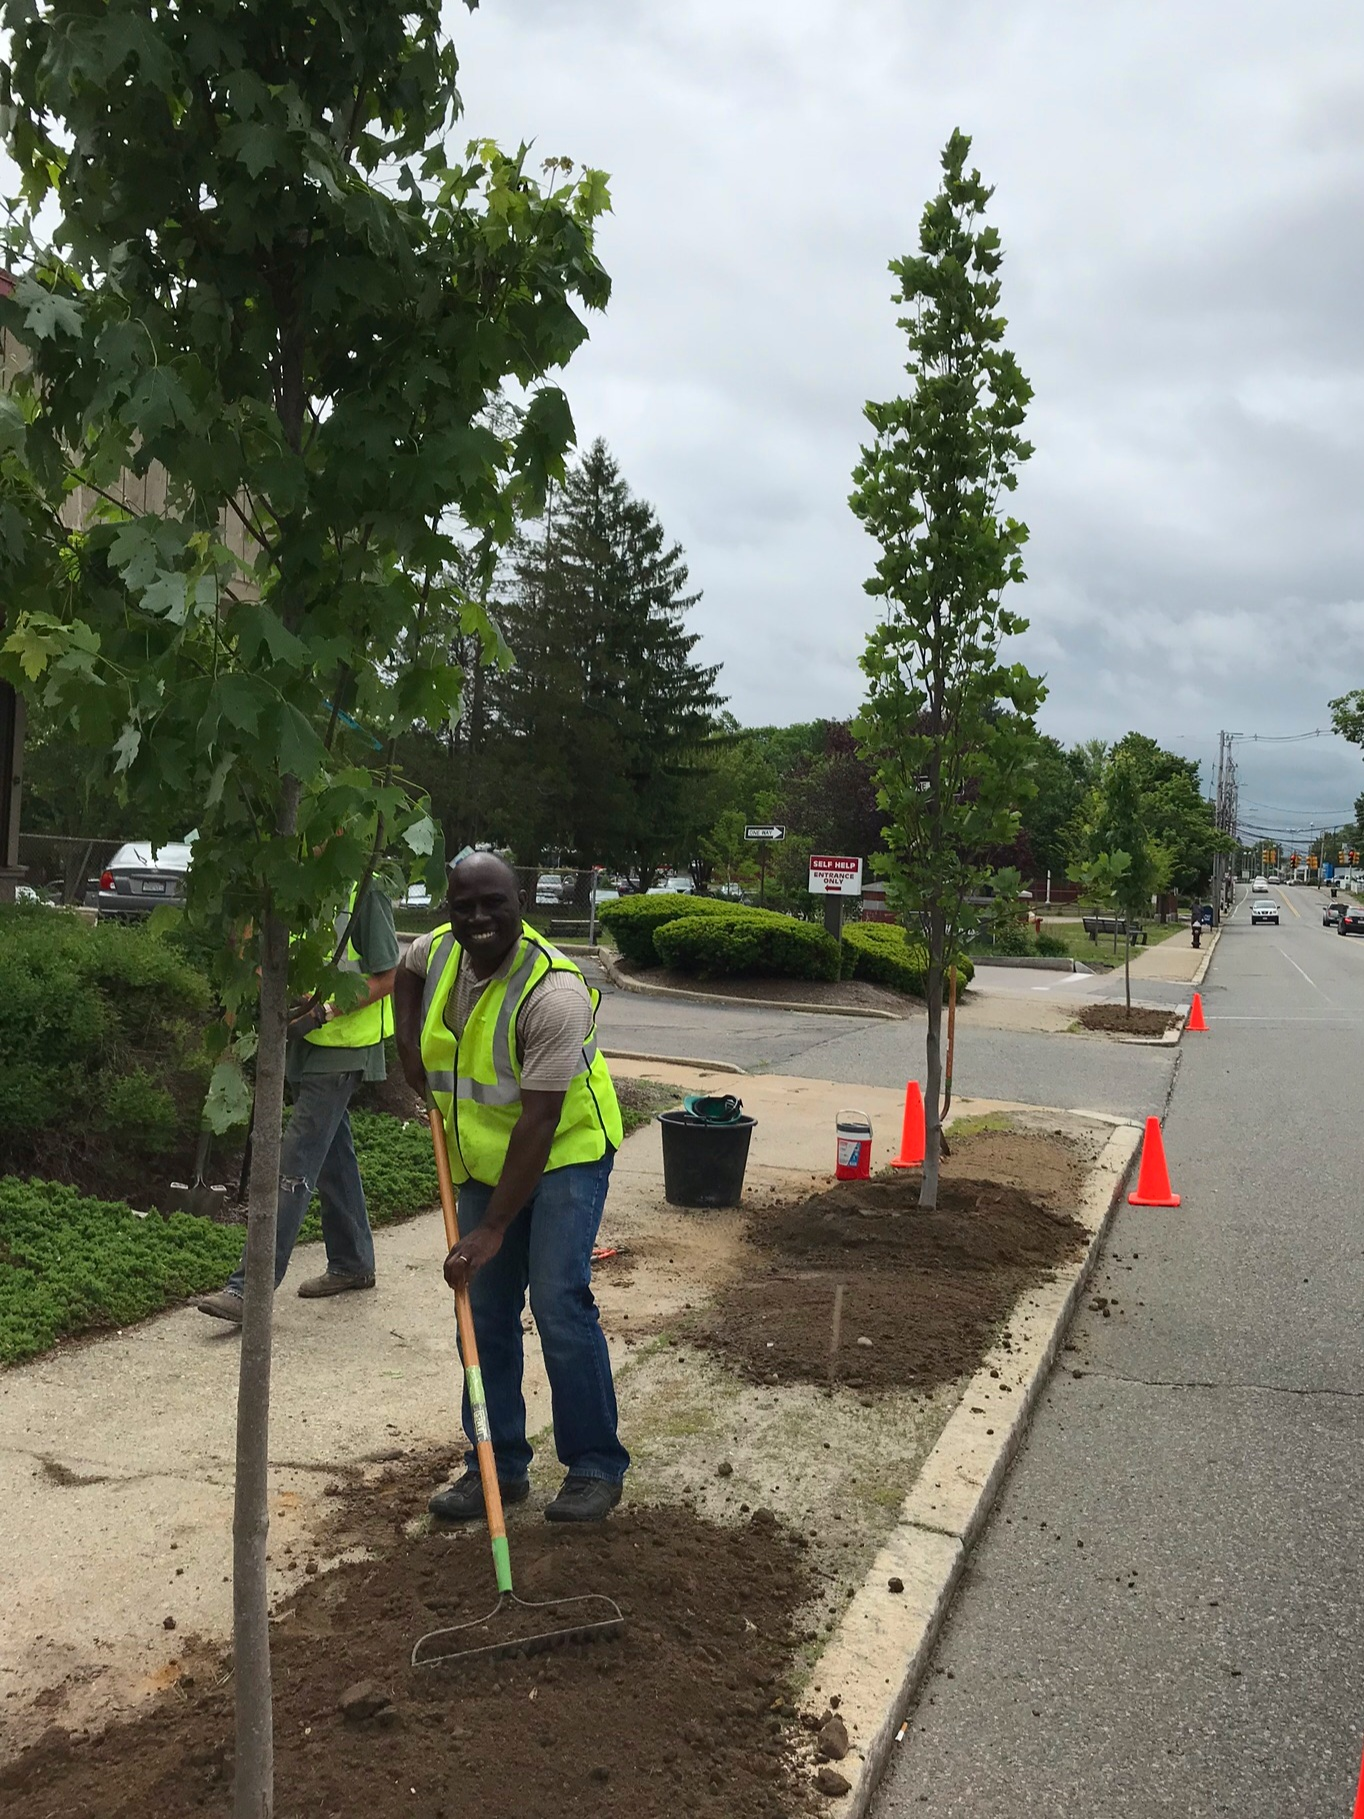 (Above) Street trees being planted as part of GGCP. By 2020, thousands of newly planted trees will line the streets and fill the yards of Brockton residents.